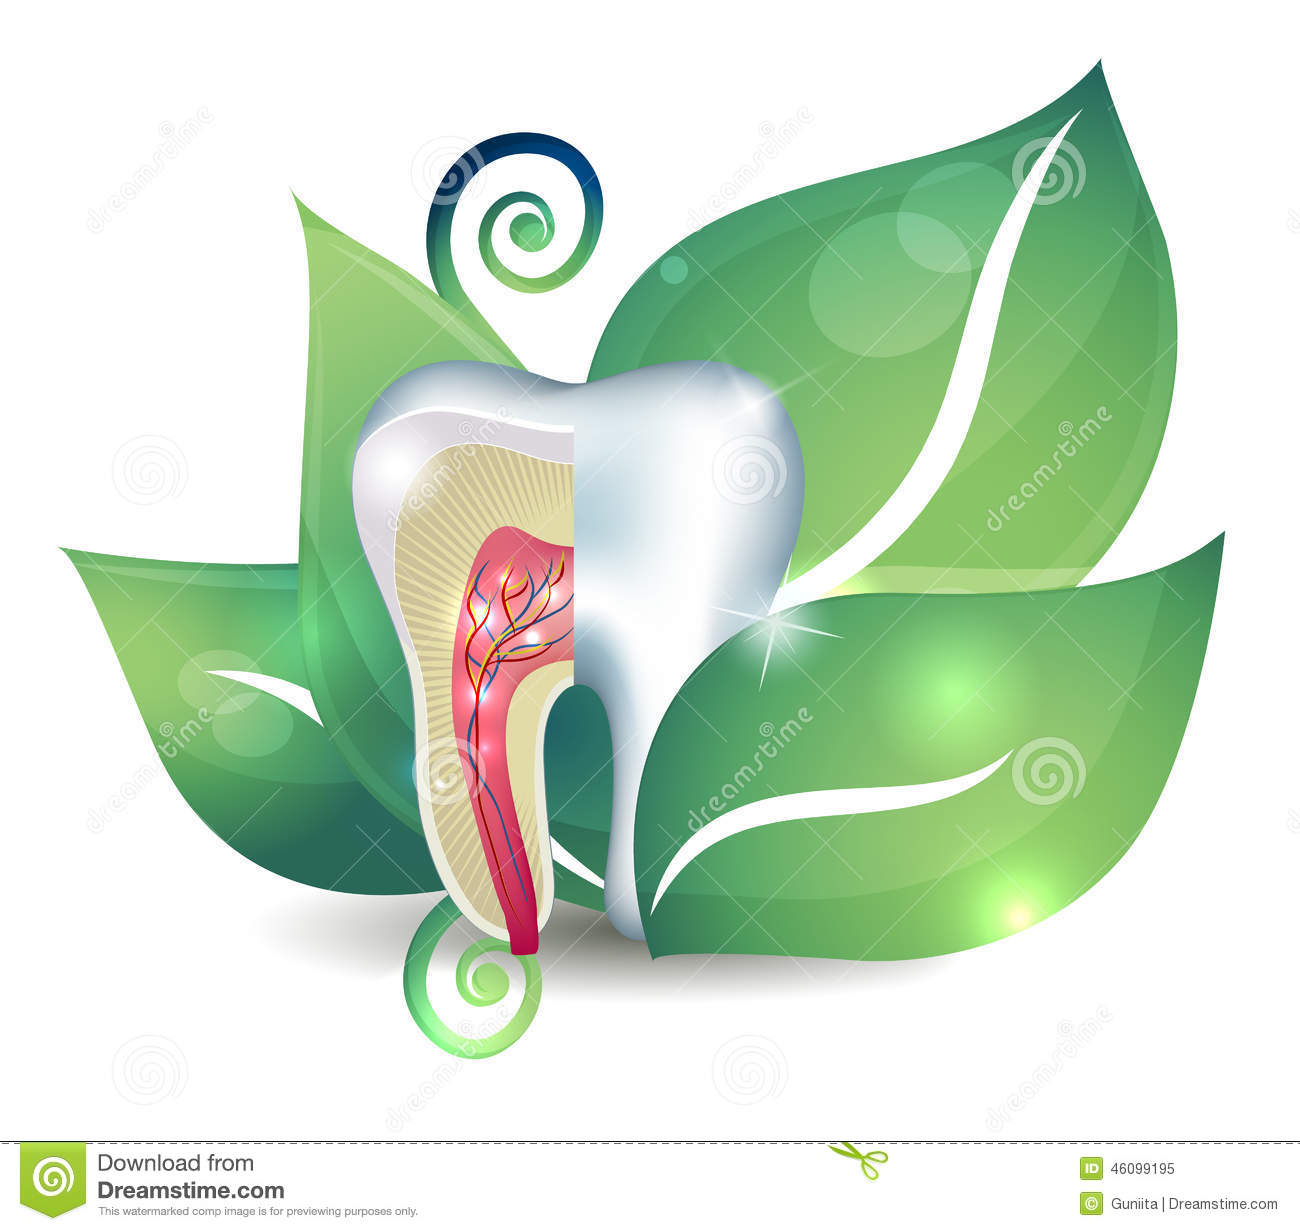 Tooth anatomy and leaf stock vector. Illustration of dental - 46099195